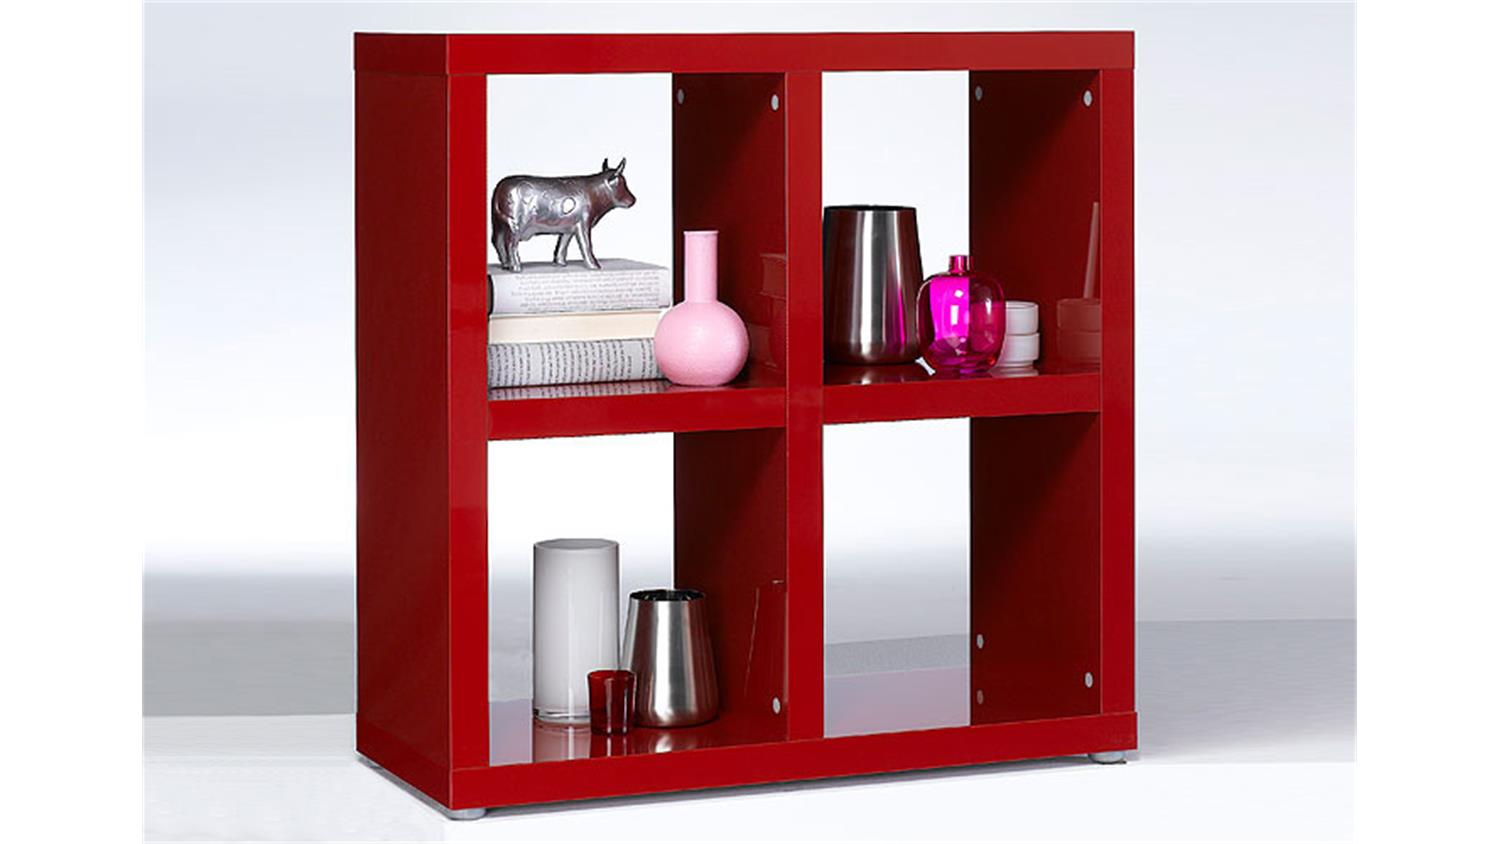 regal tonic b cherregal in rot hochglanz lackiert 4 f cher. Black Bedroom Furniture Sets. Home Design Ideas